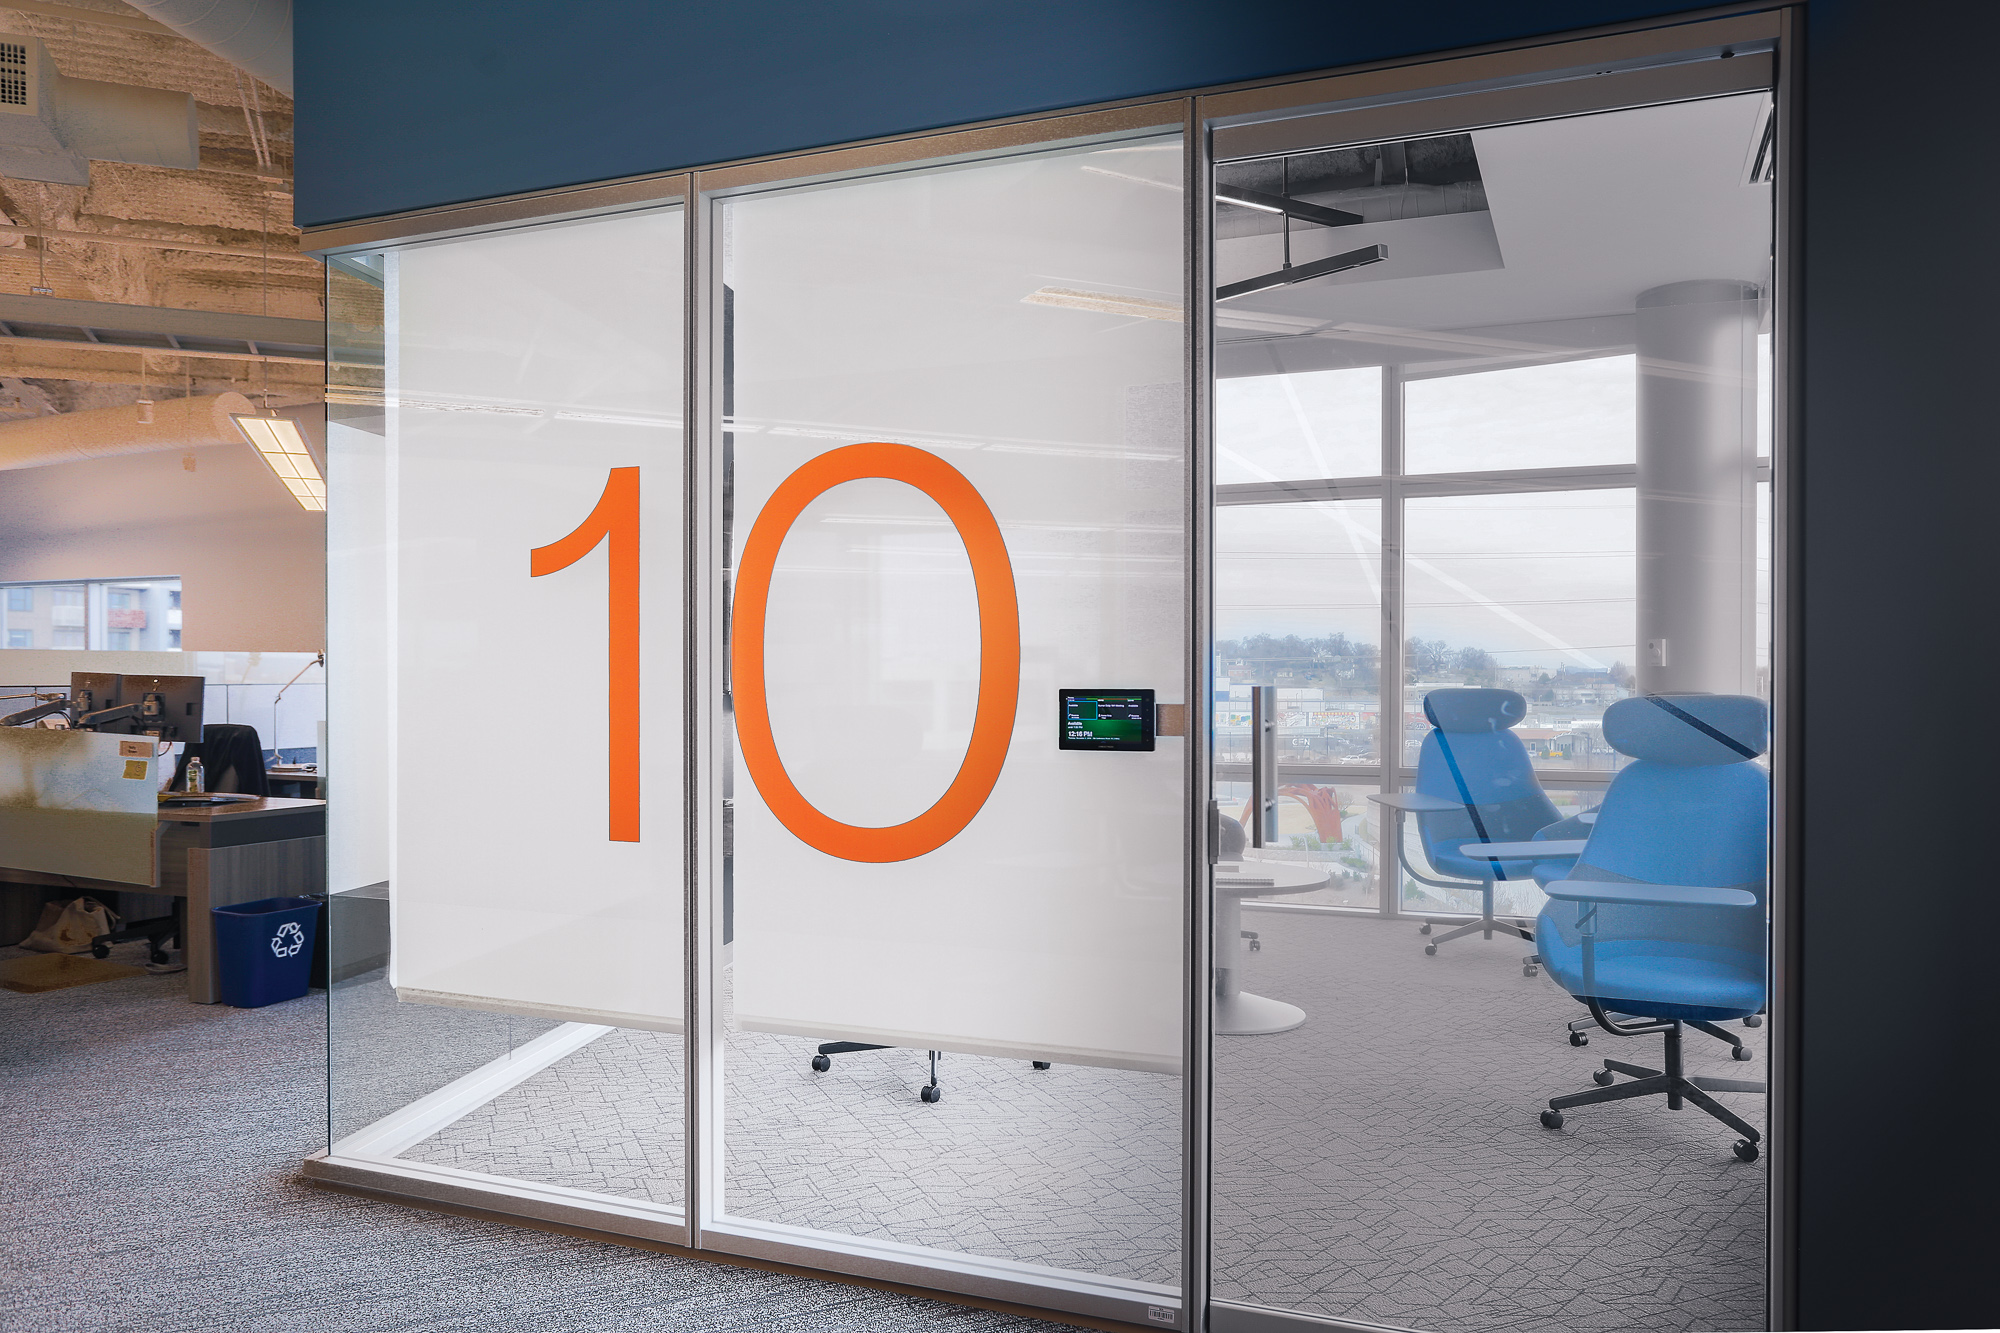 HCA Building 4_Environmental Branding_Commercial Window Film_Room 10_MG_2057_small 2000 px.jpg